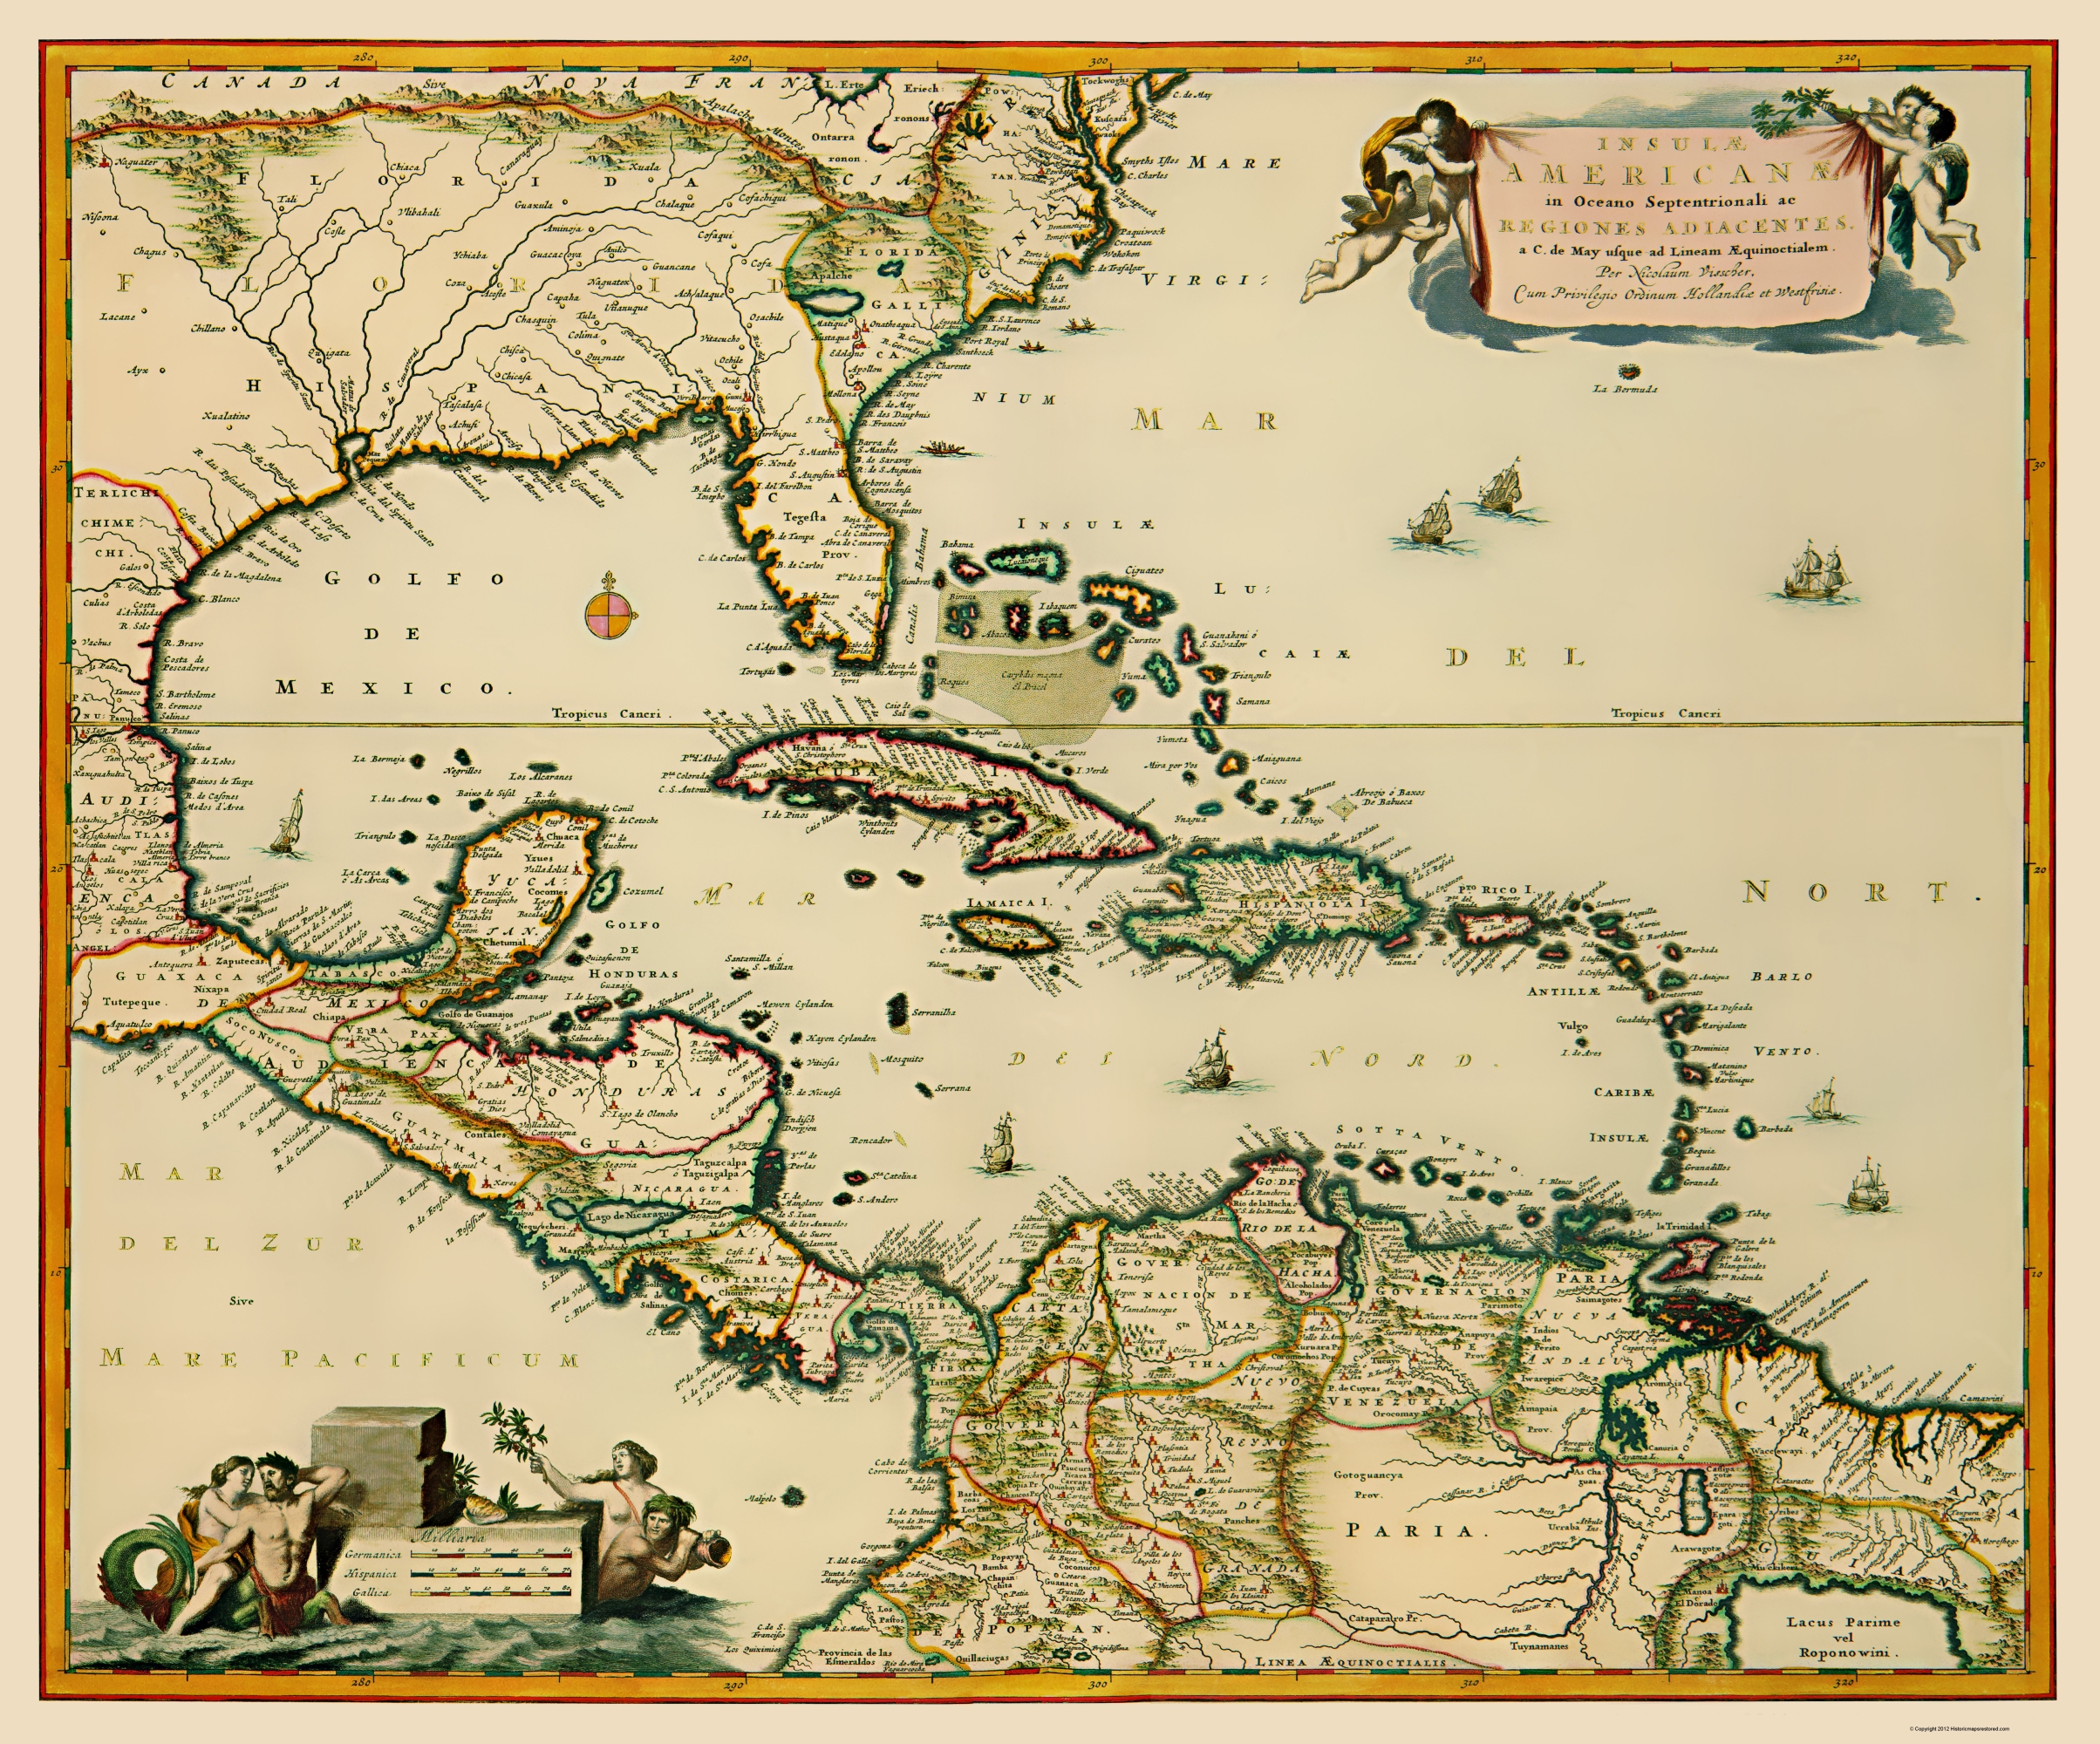 Old Western Hemisphere Map - Central America and Caribbean 1681 - 23 x 27